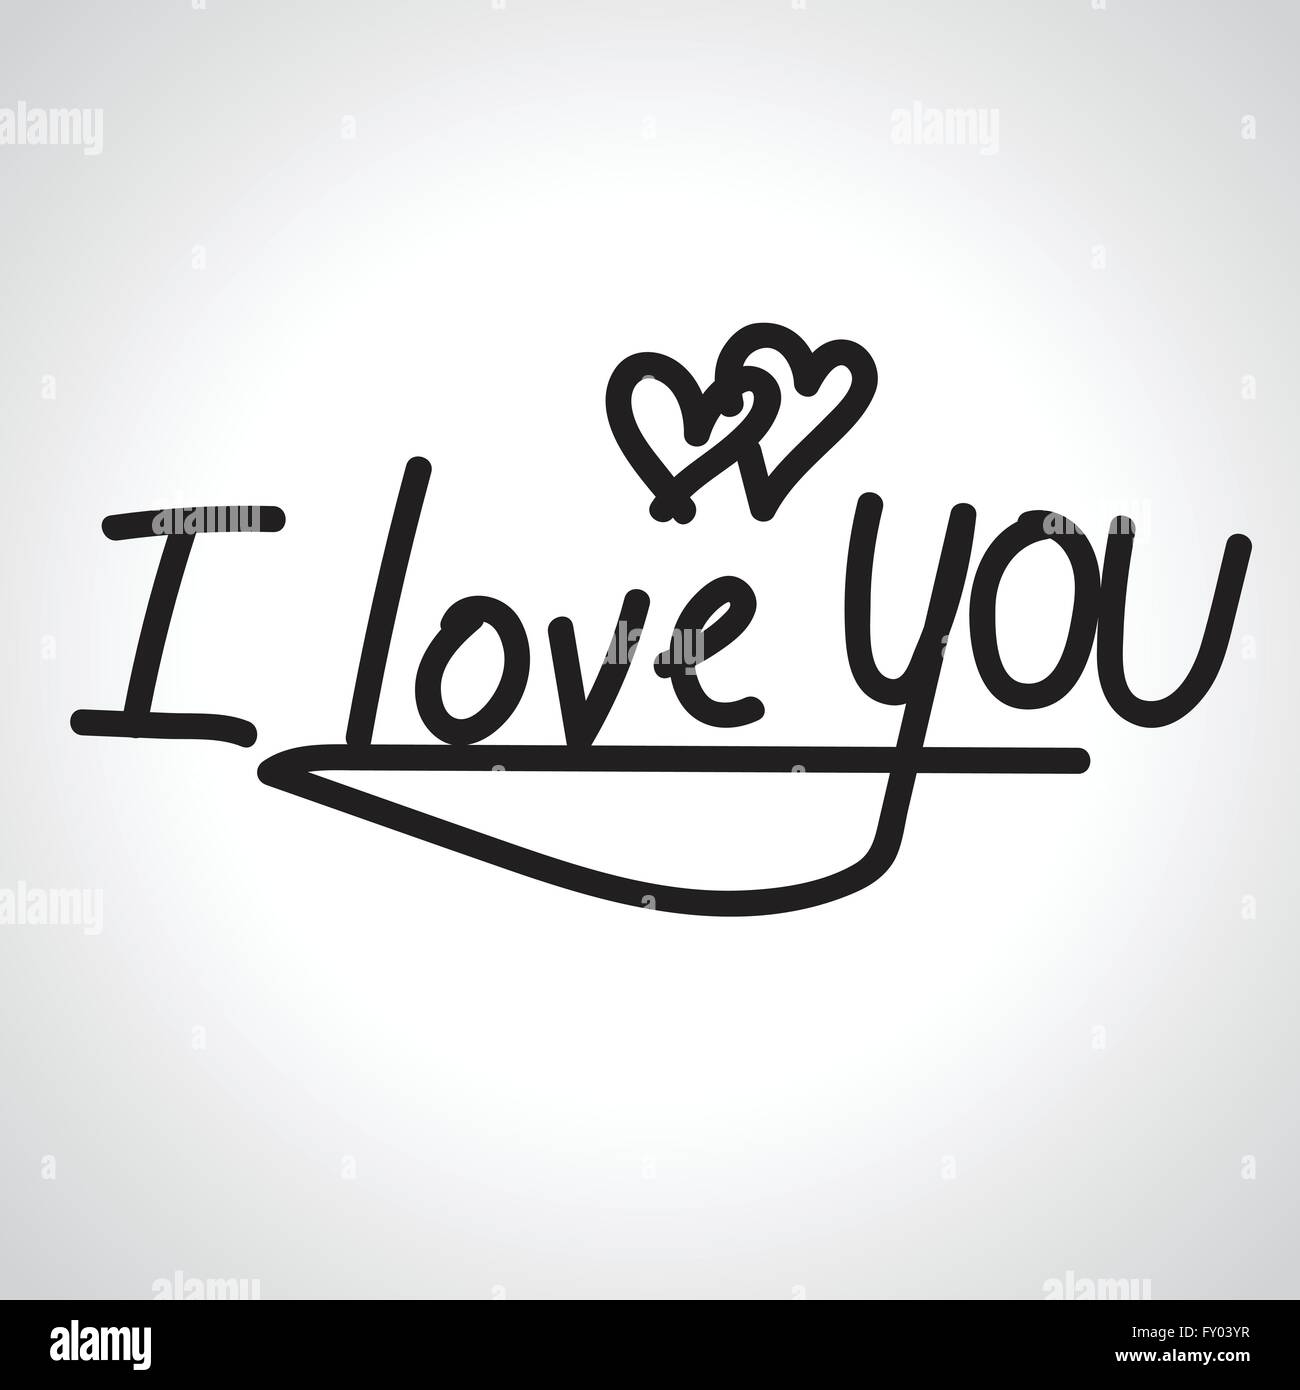 I love you hand lettering handmade calligraphy stock